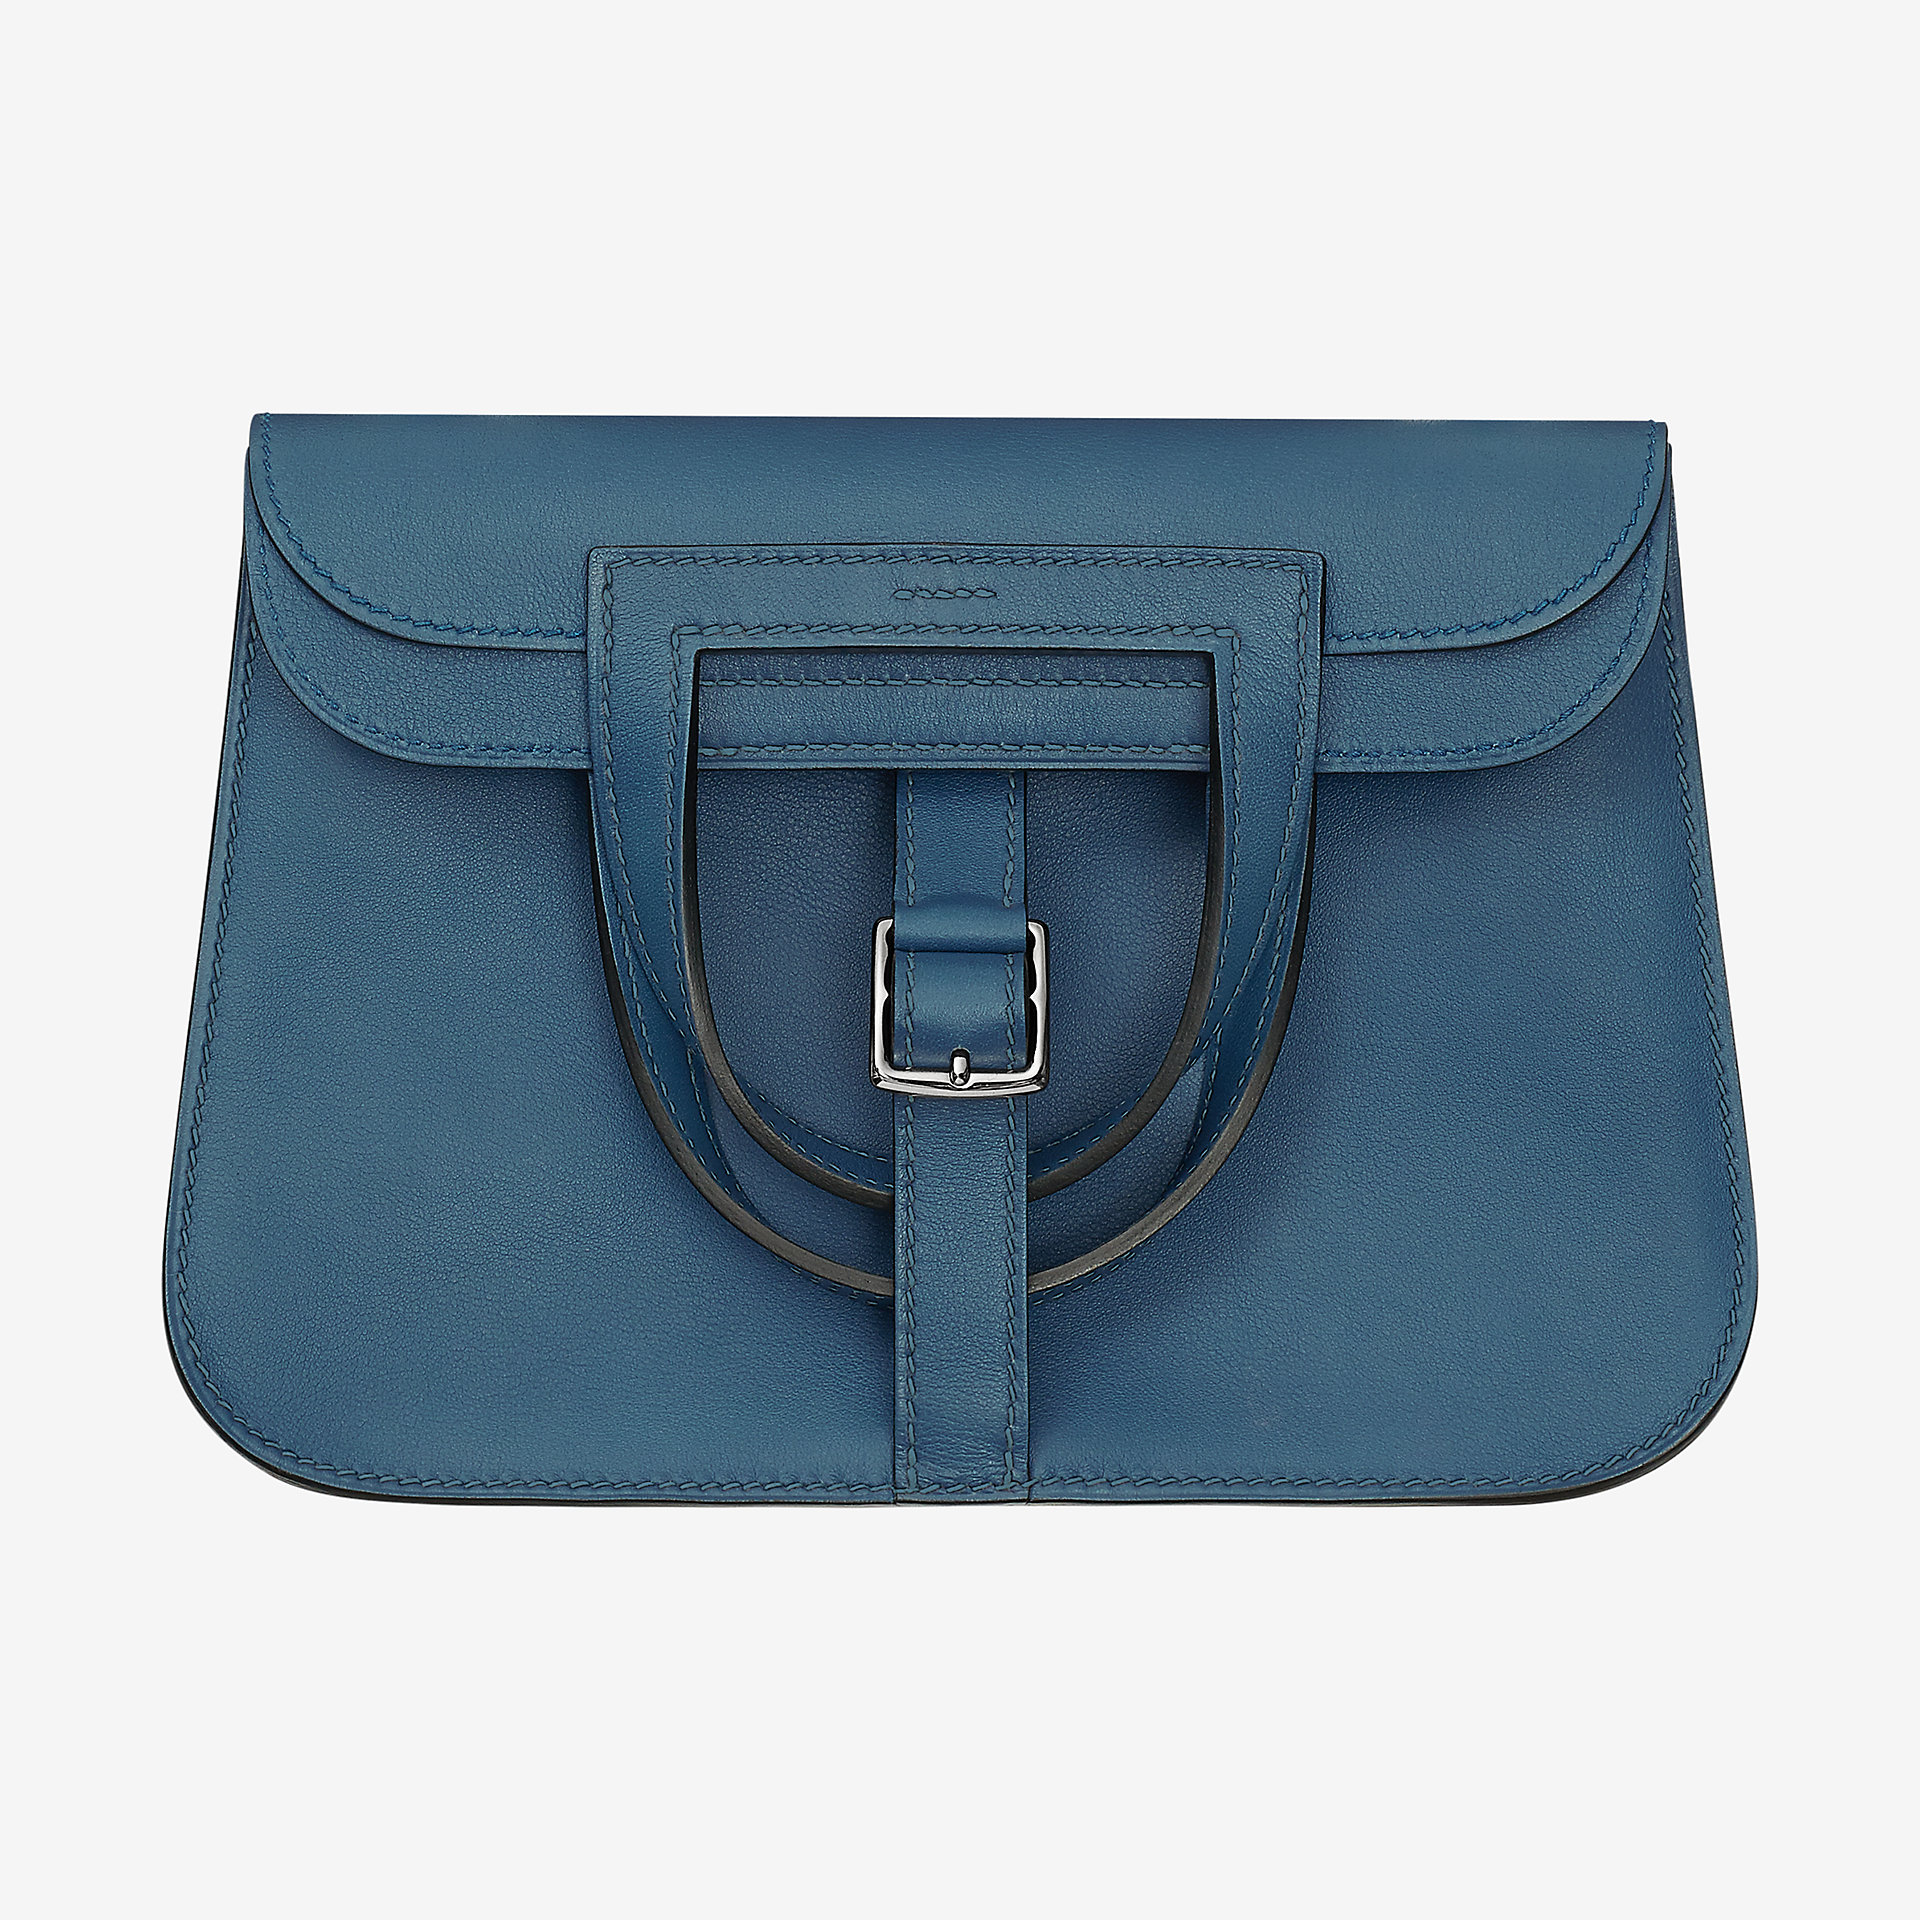 爱马仕Hermes Halzan mini bag迷你手袋 bleu agate Swift calfskin 小牛皮